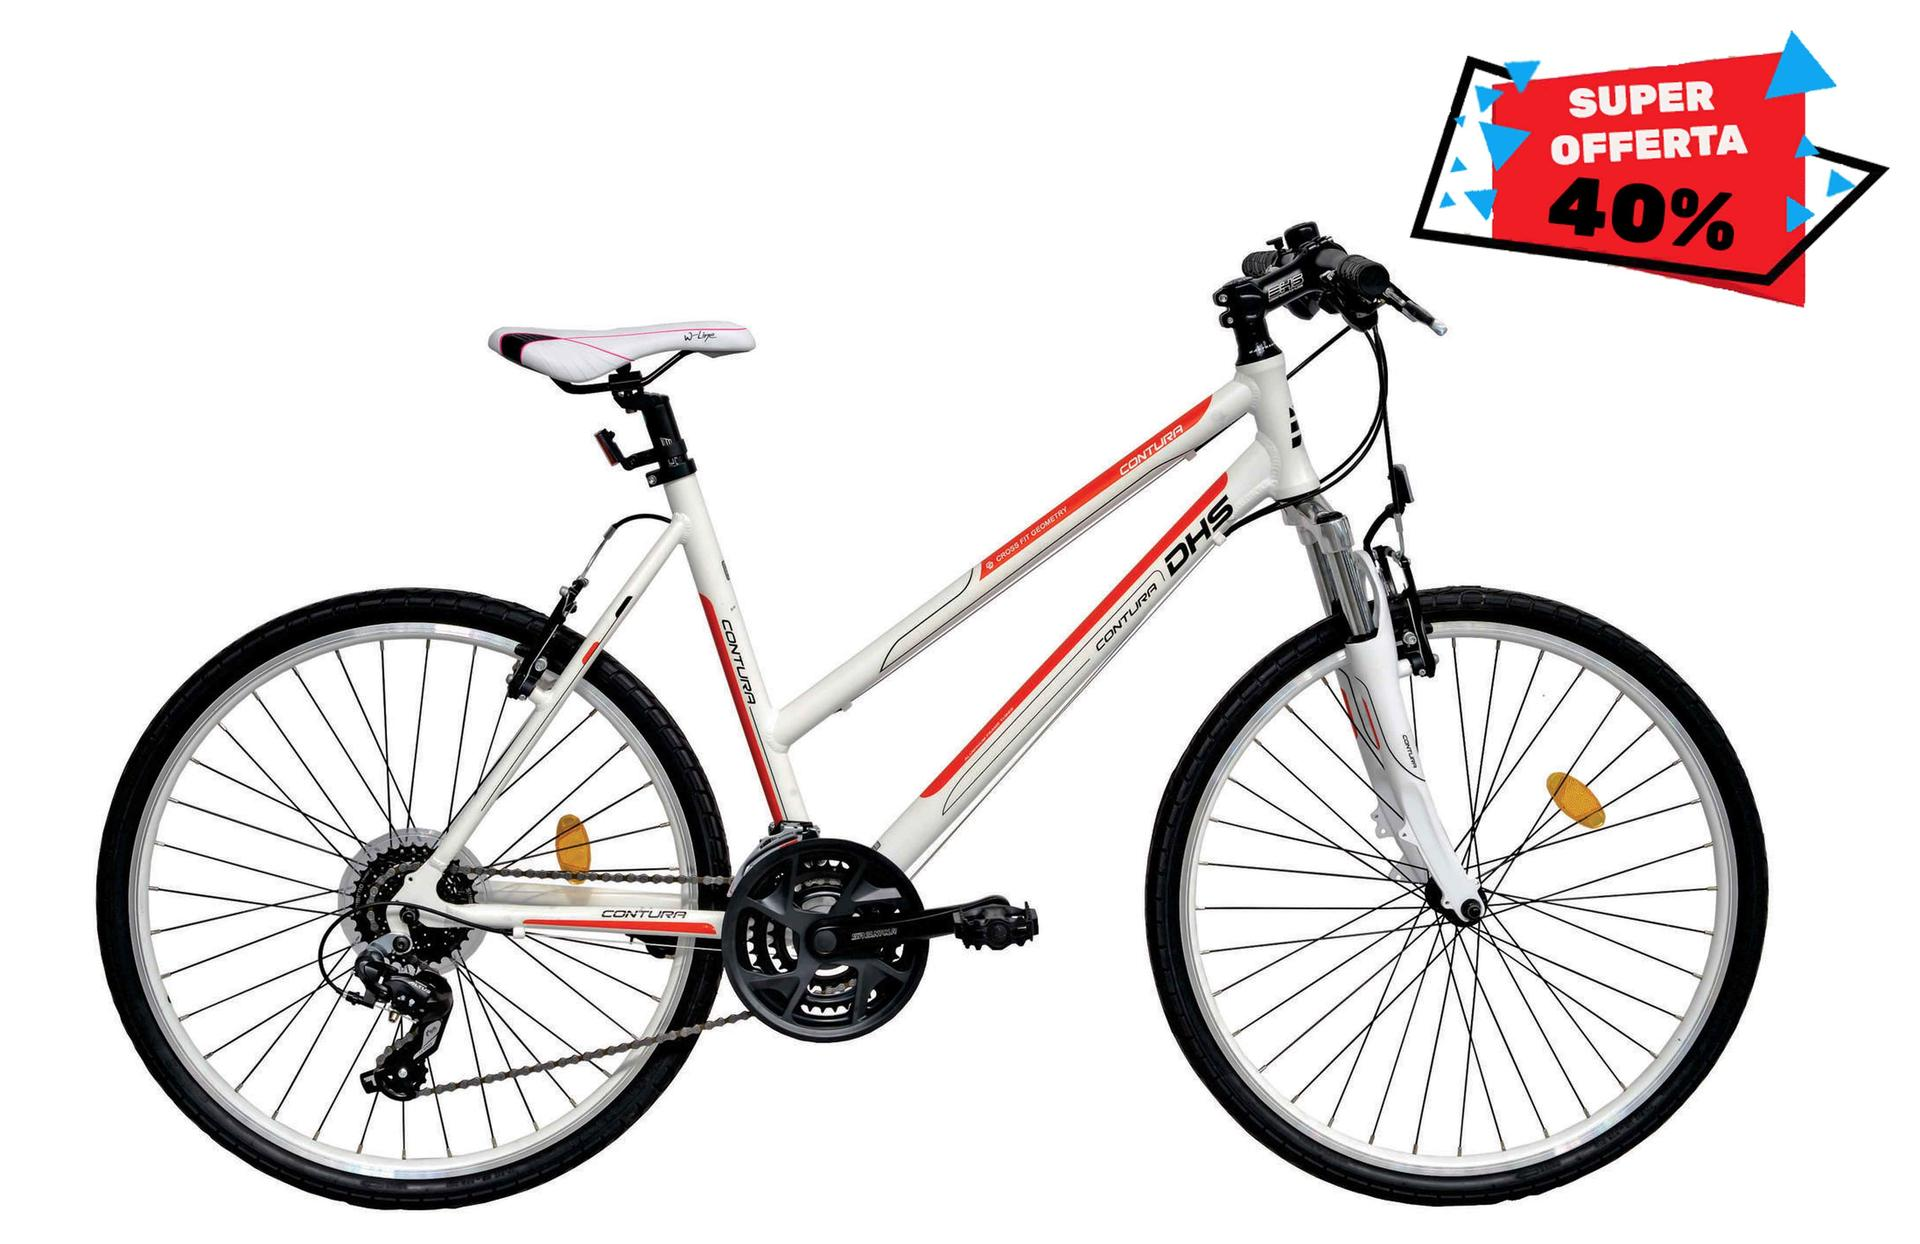 Bicicletta donna da cross DHS 2666 White-Orange 495mm